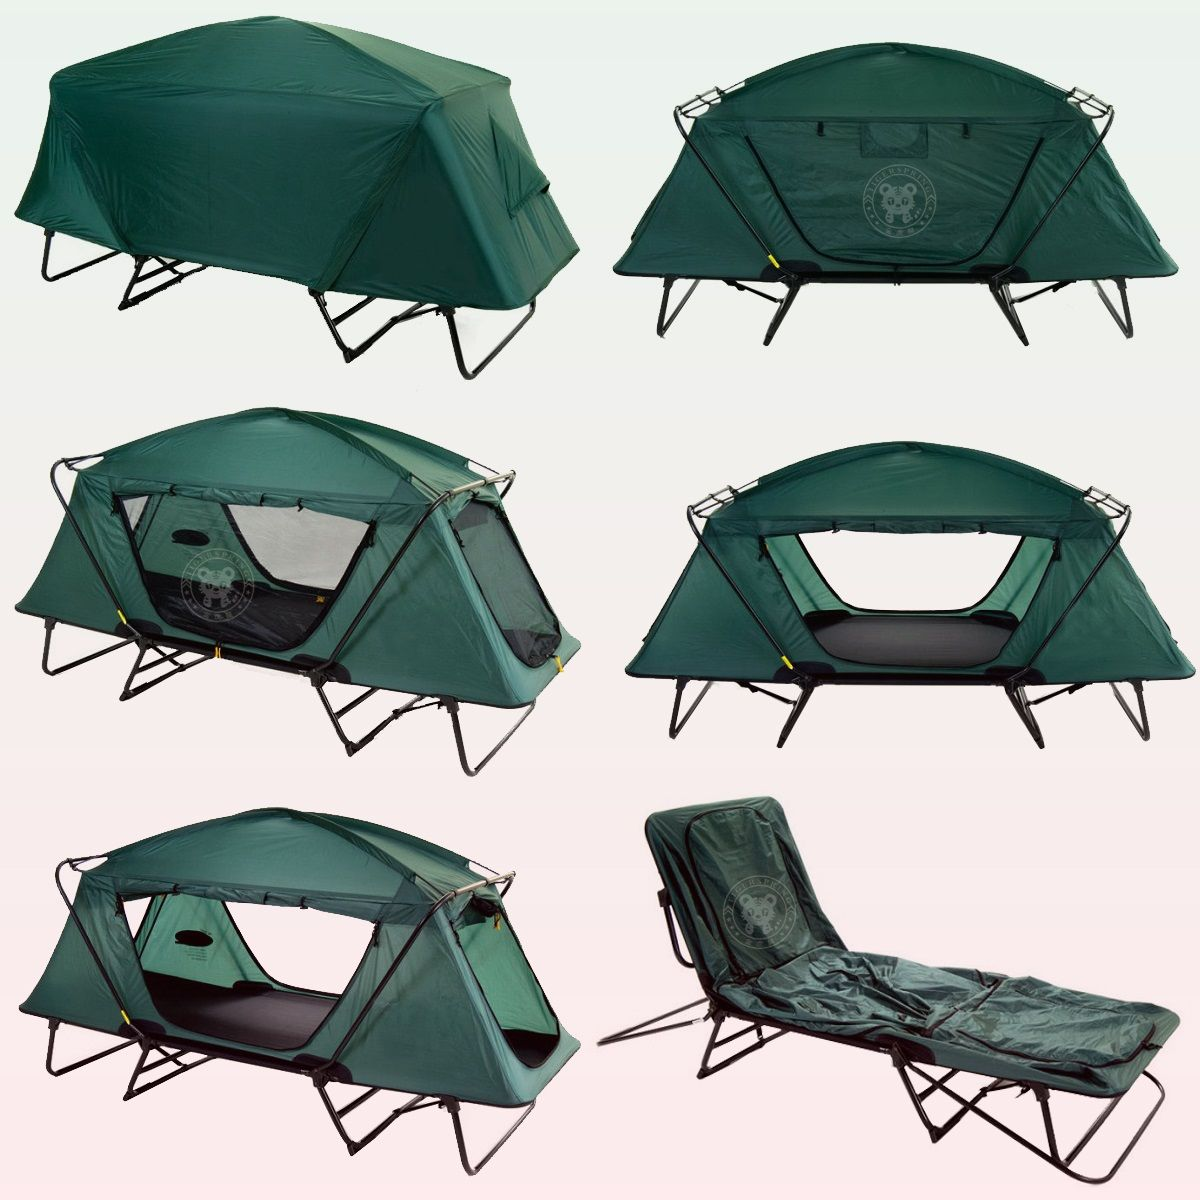 Large single person tent cot double layers waterproof outdoor fishing hunting and c&ing tent & Large single person tent cot double layers waterproof outdoor ...